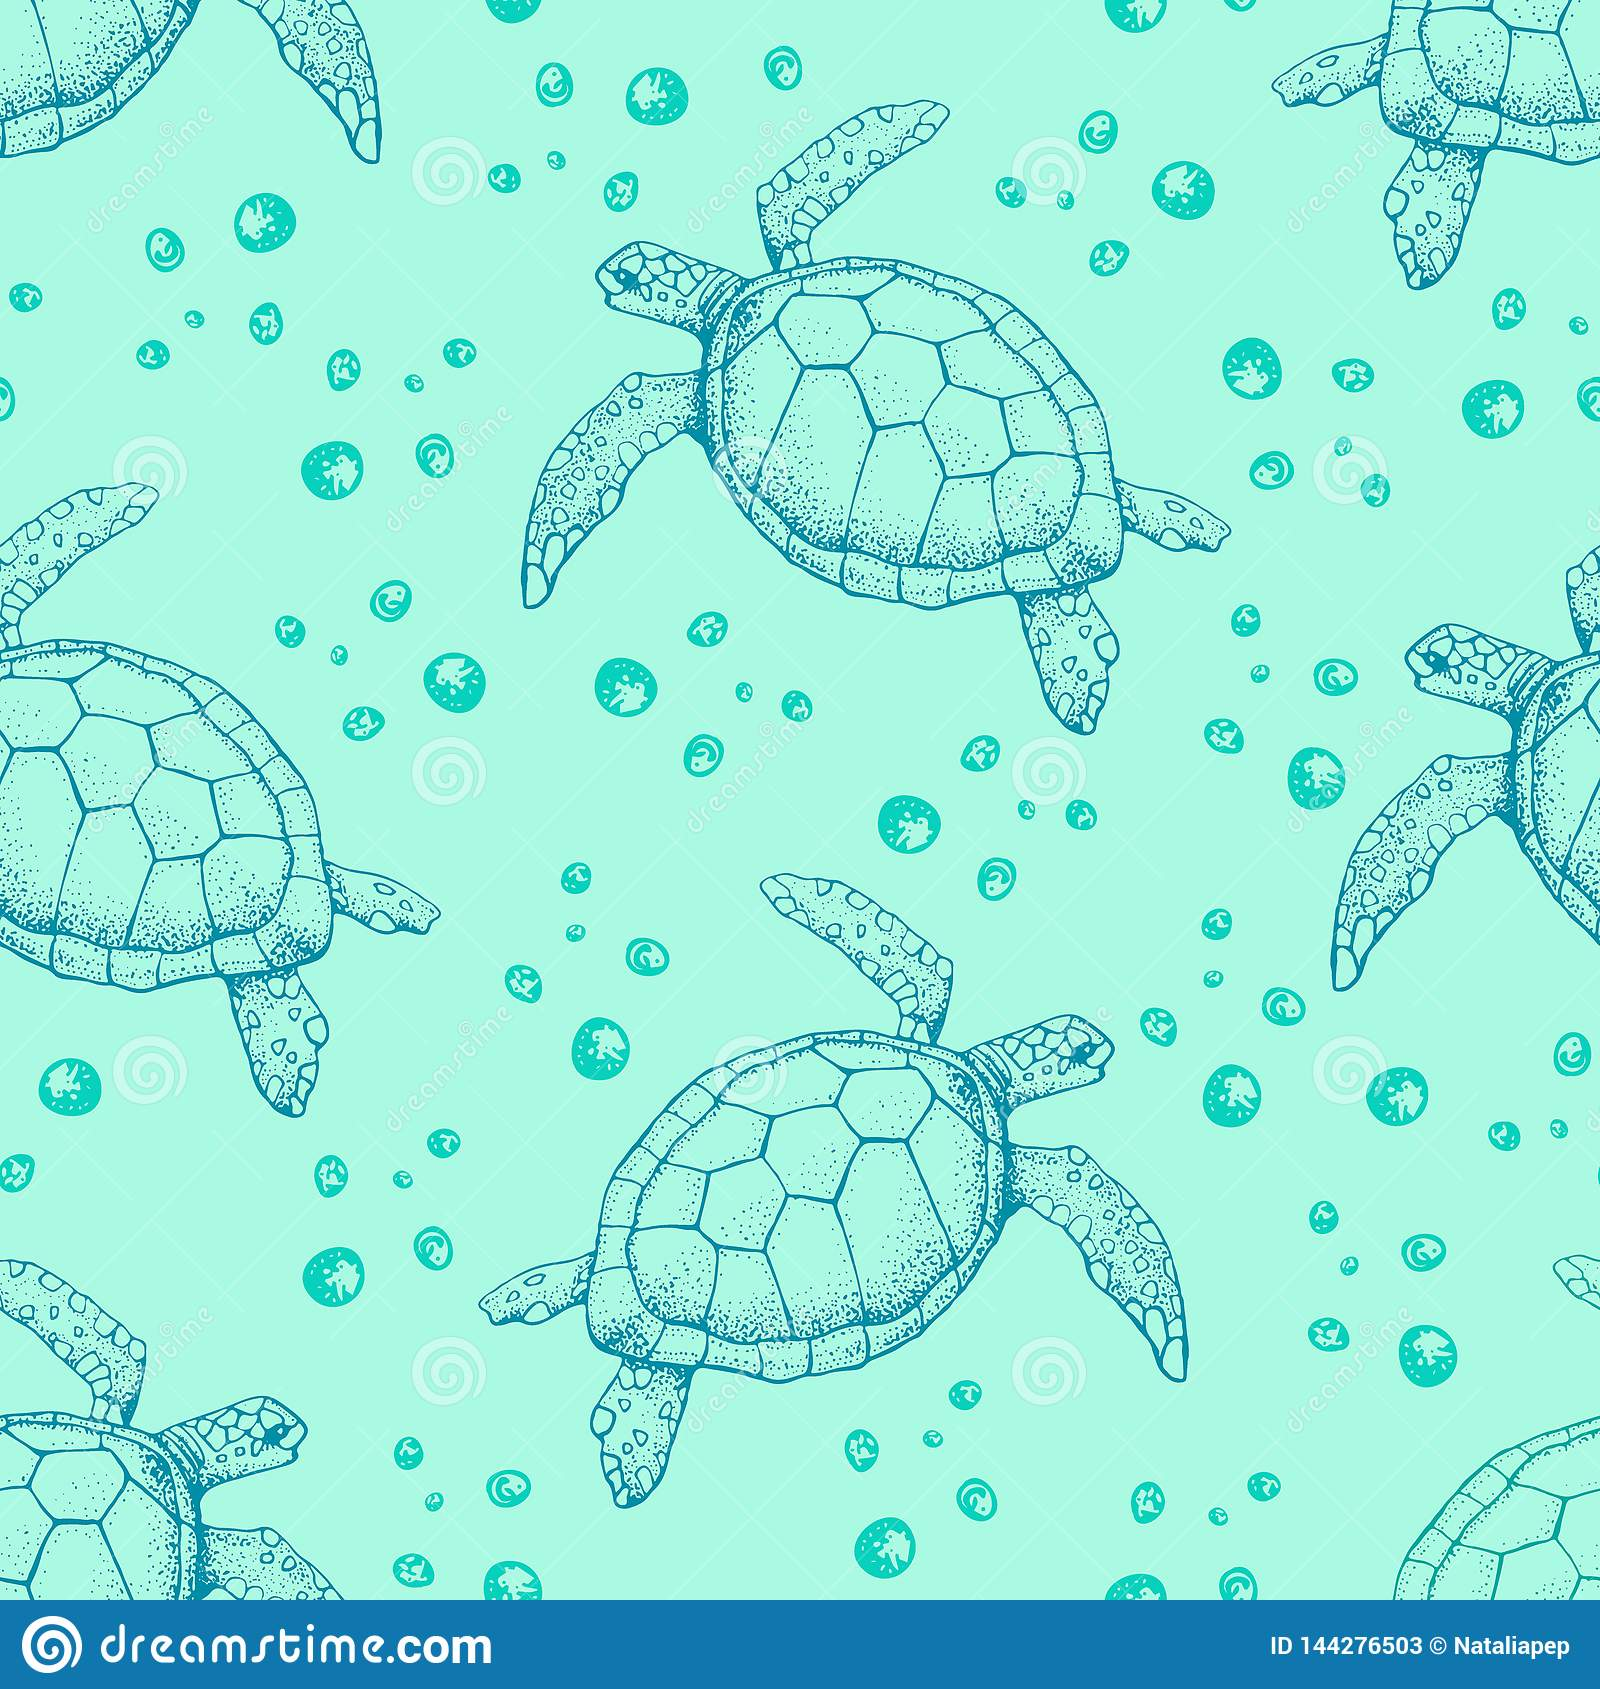 Seamless Pattern With Hand Drawn Sea Turtles Vector With Animal Underwater Illustration For Wallpaper Web Page Background Stock Vector Illustration Of Doodle Season 144276503